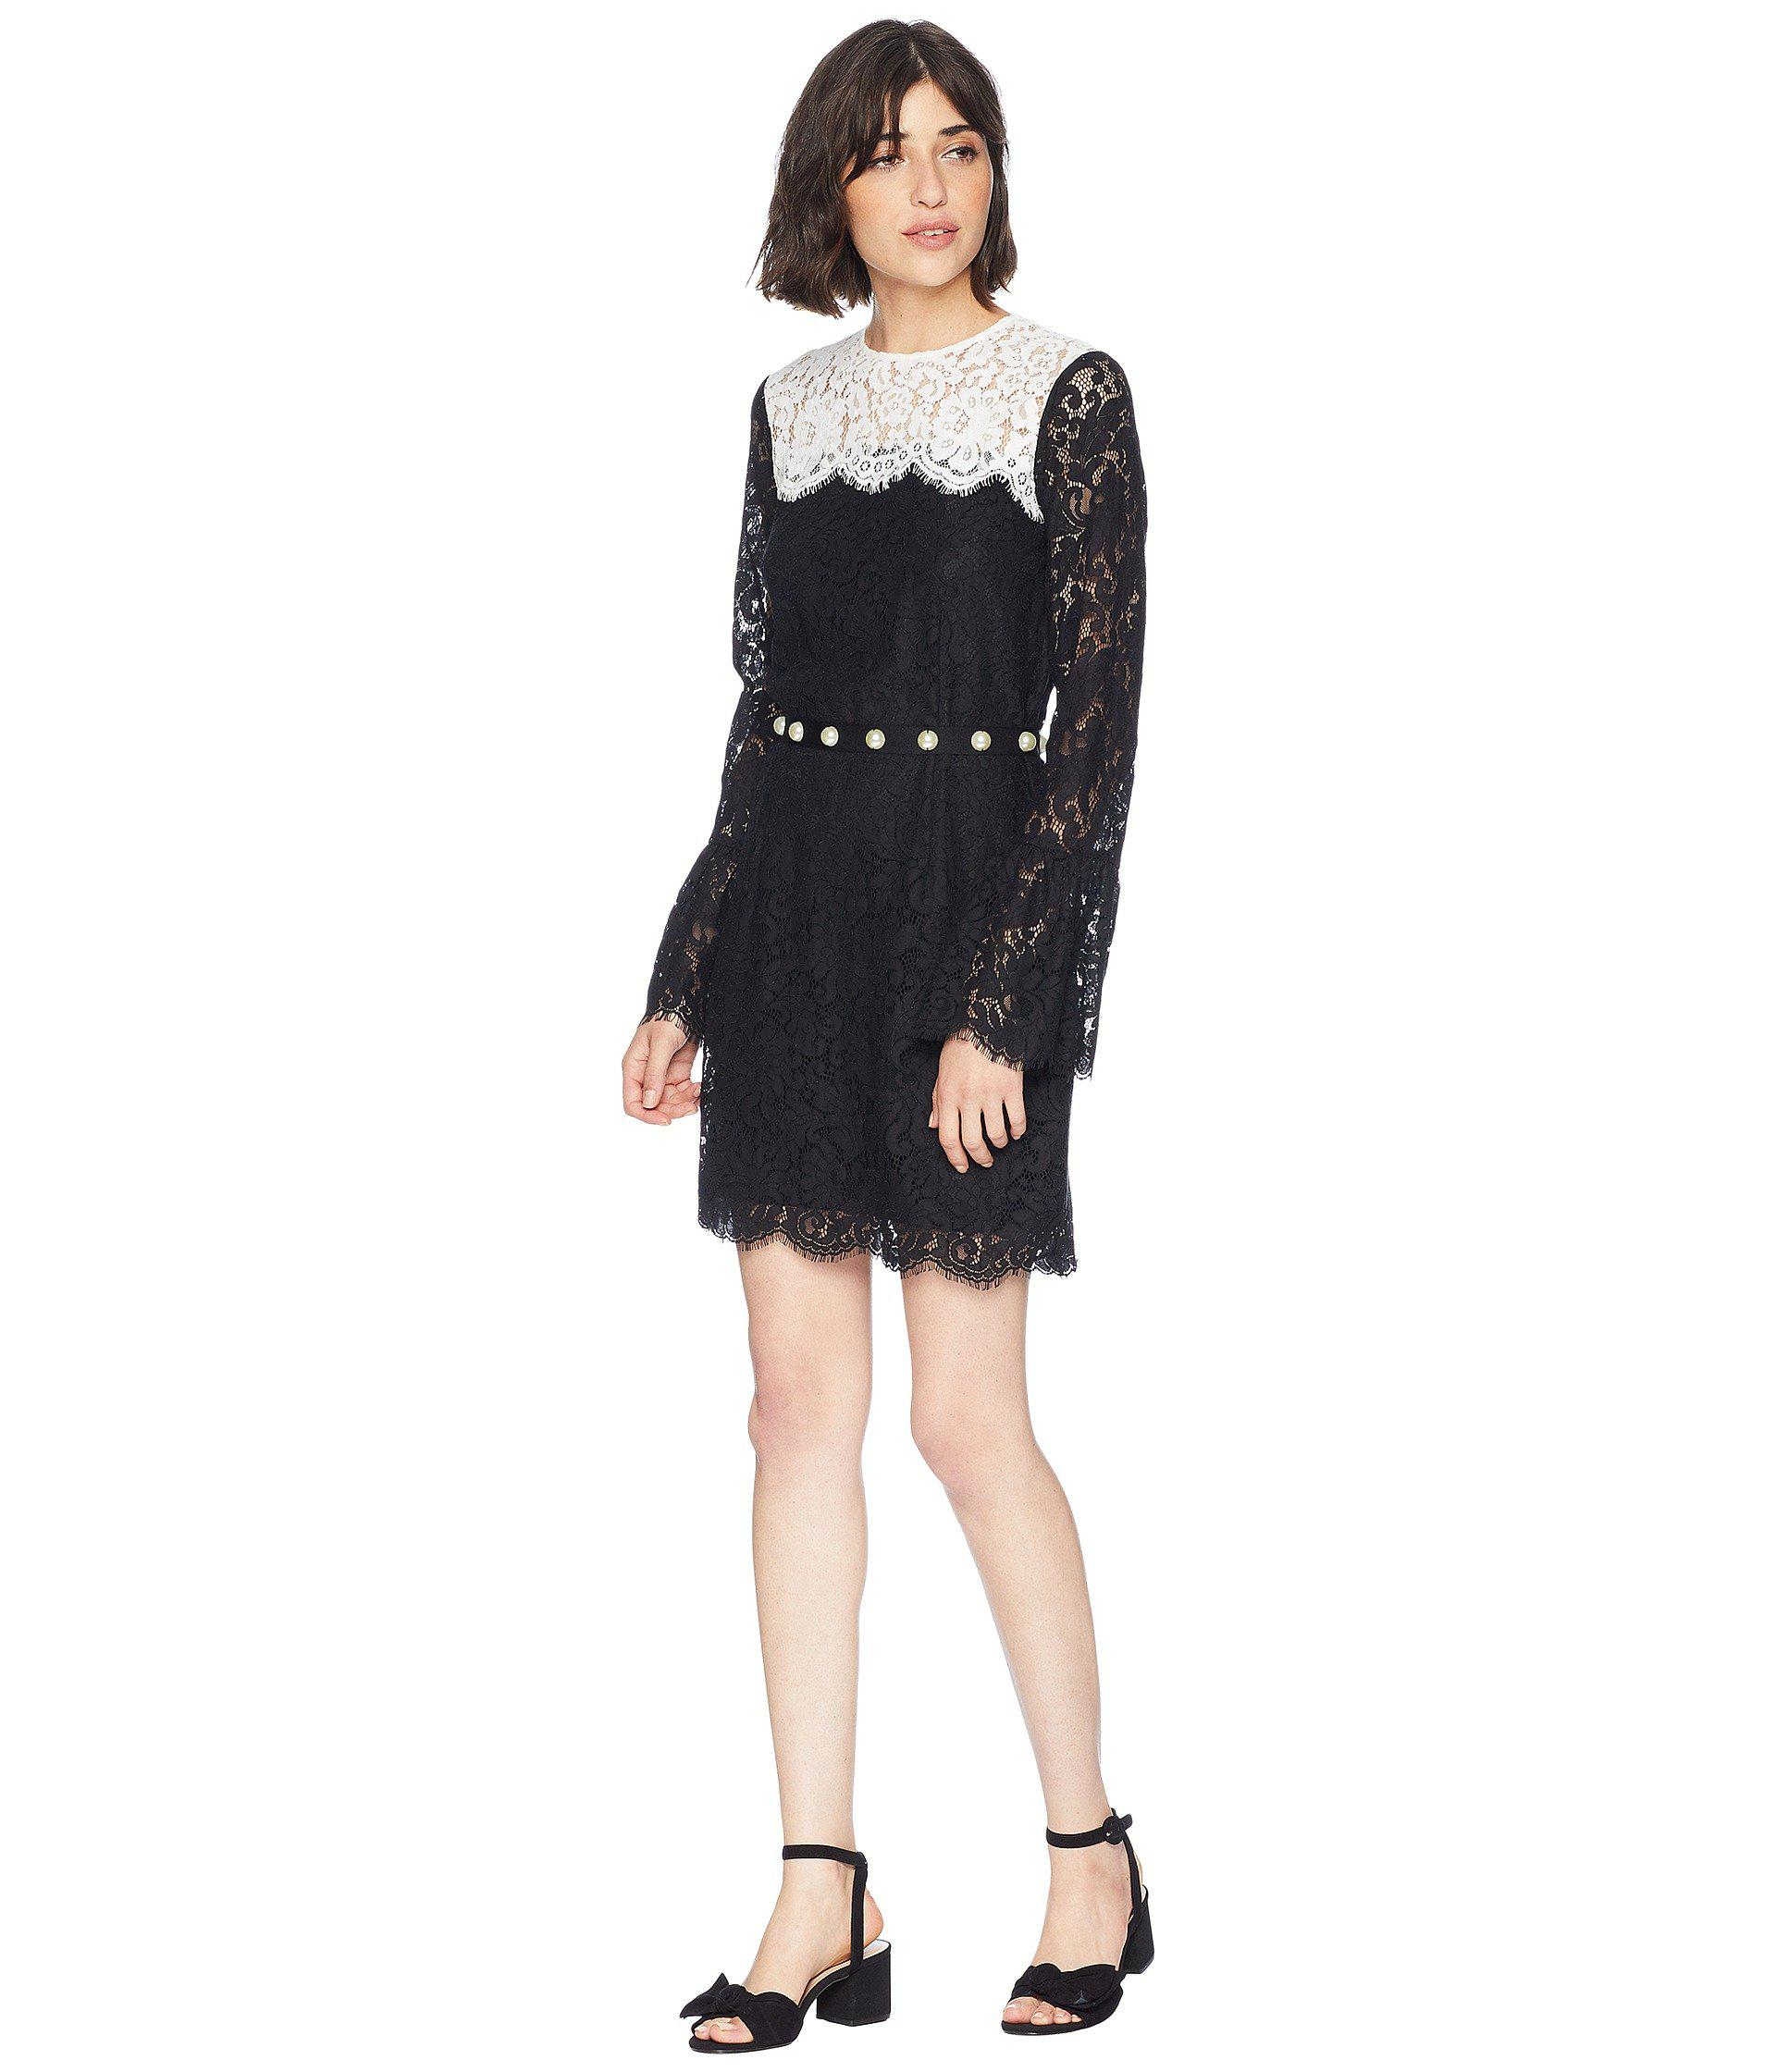 debcb93f5d Lyst - Juicy Couture Color Block Lace Bell Sleeve Dress in Black ...